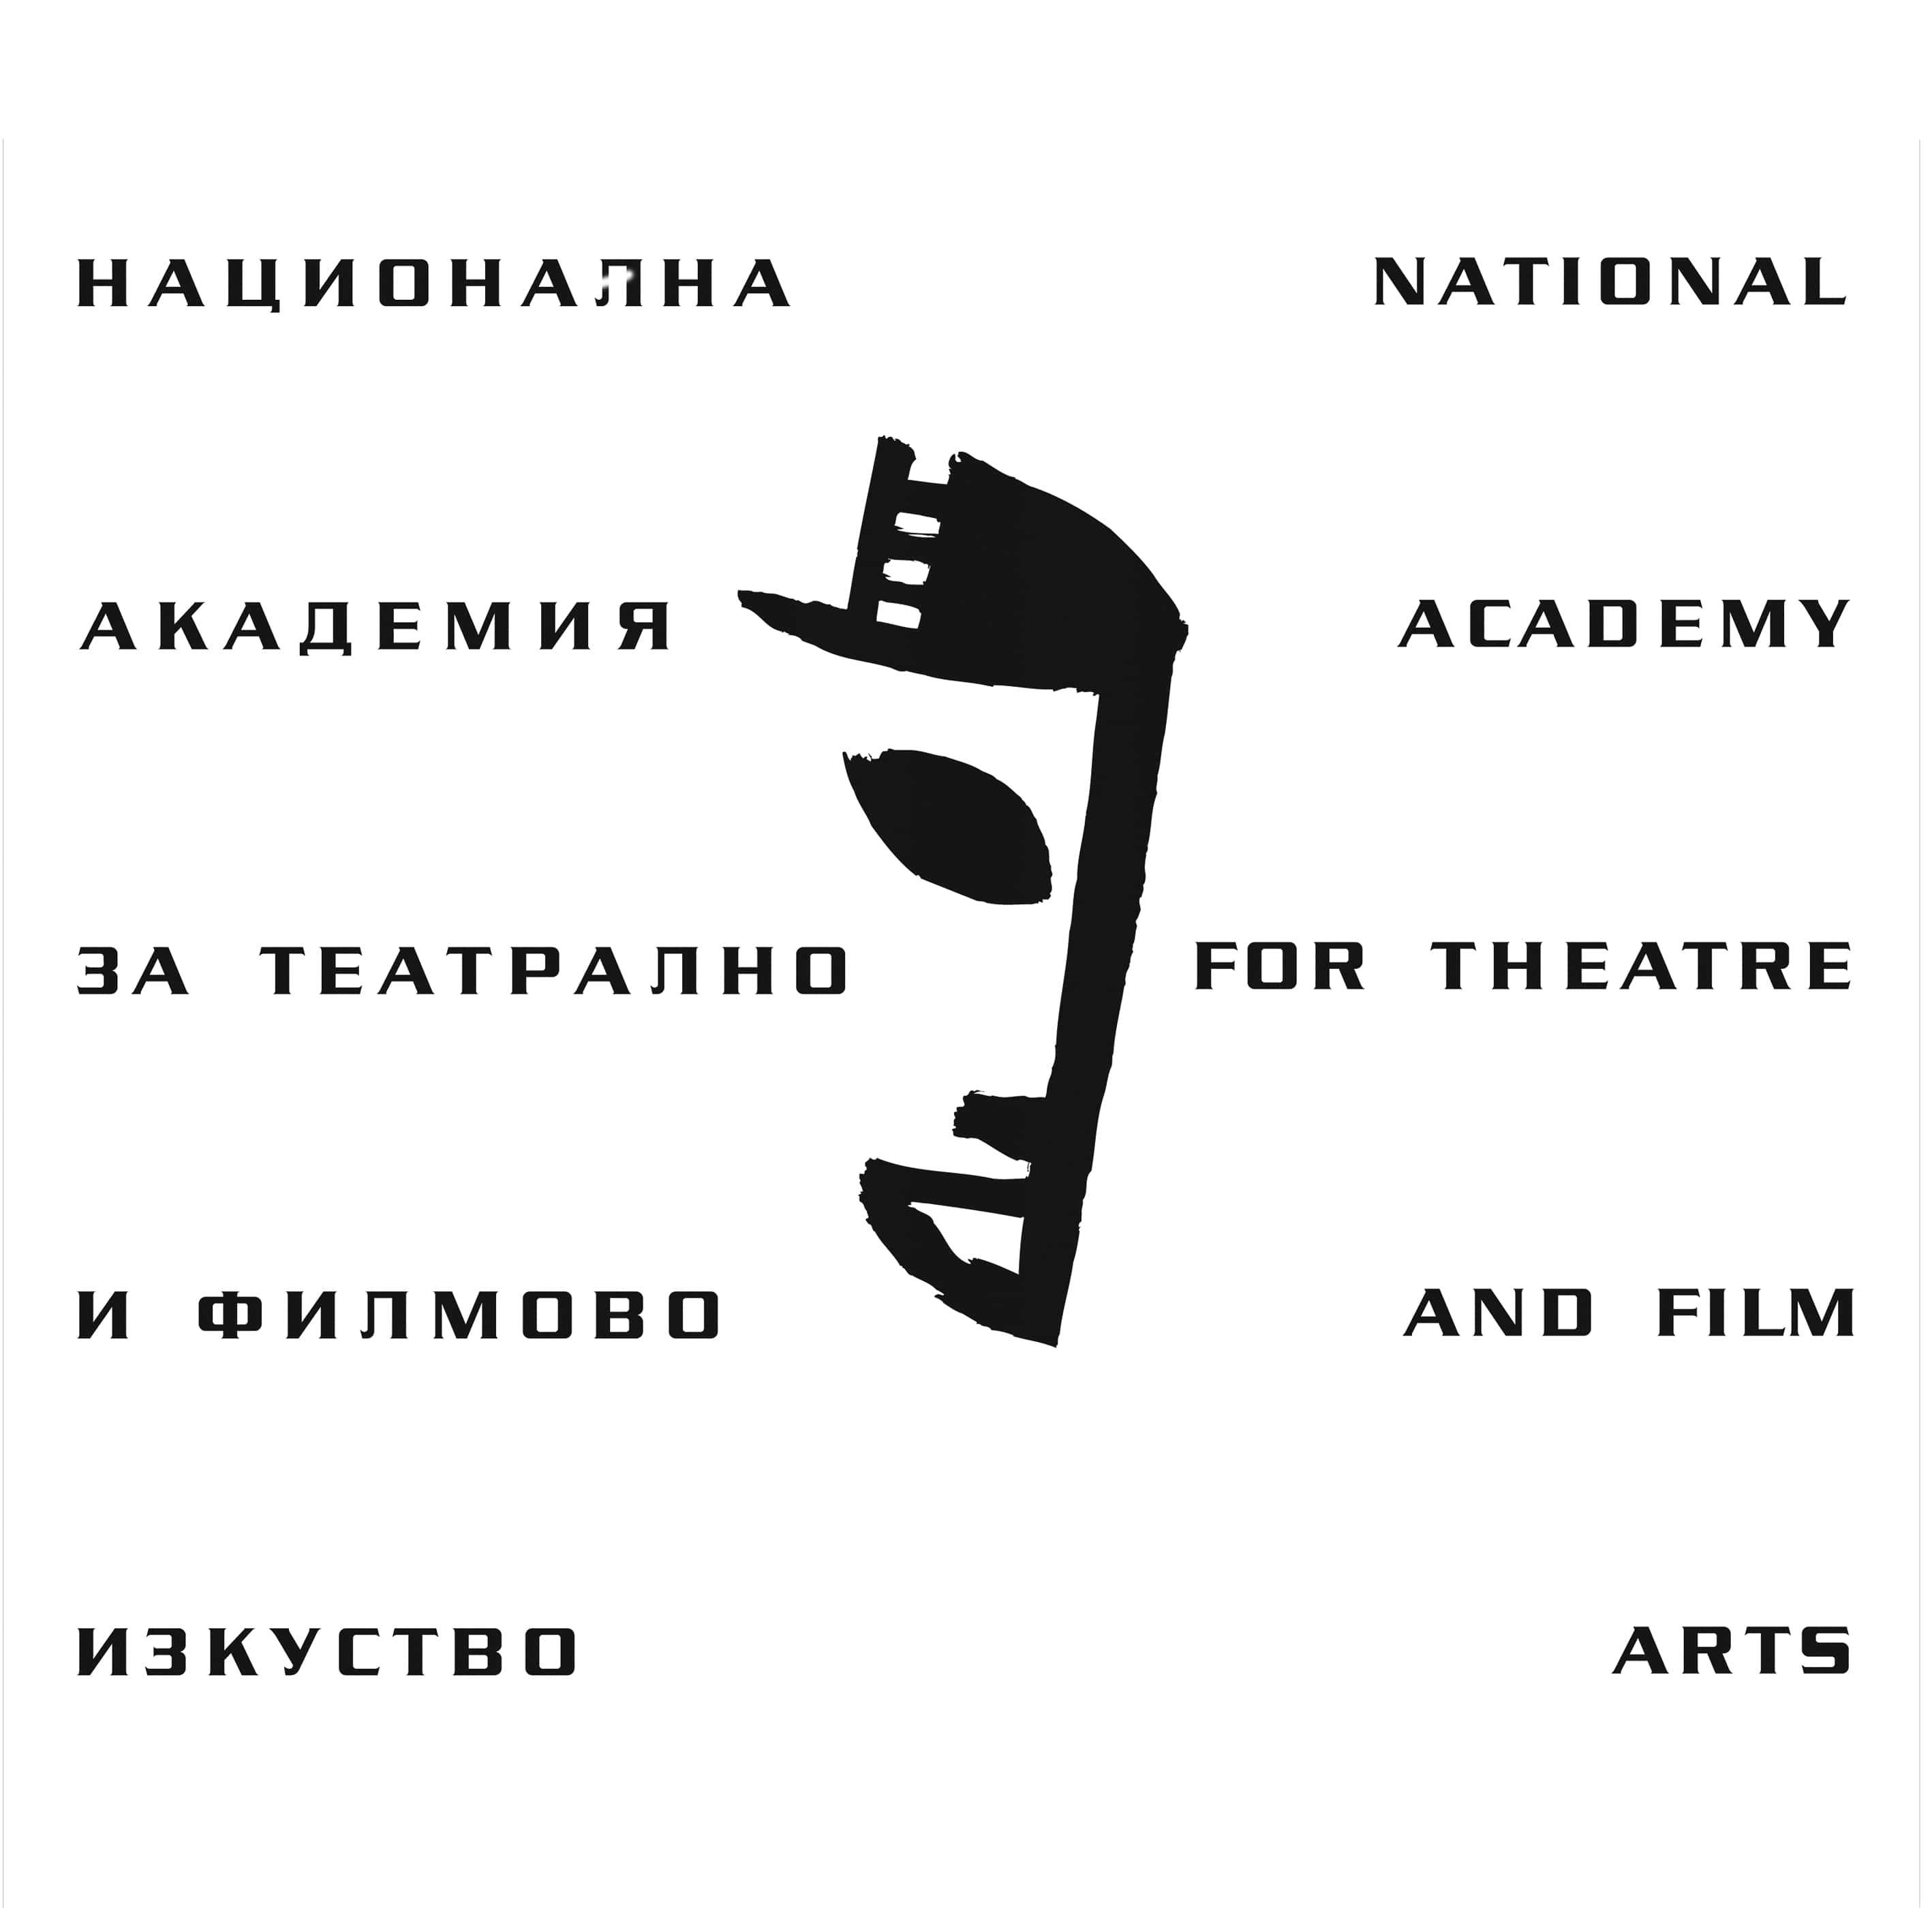 Жени Пашова - Krastyo Sarafov National Academy for Theatre and Film Arts